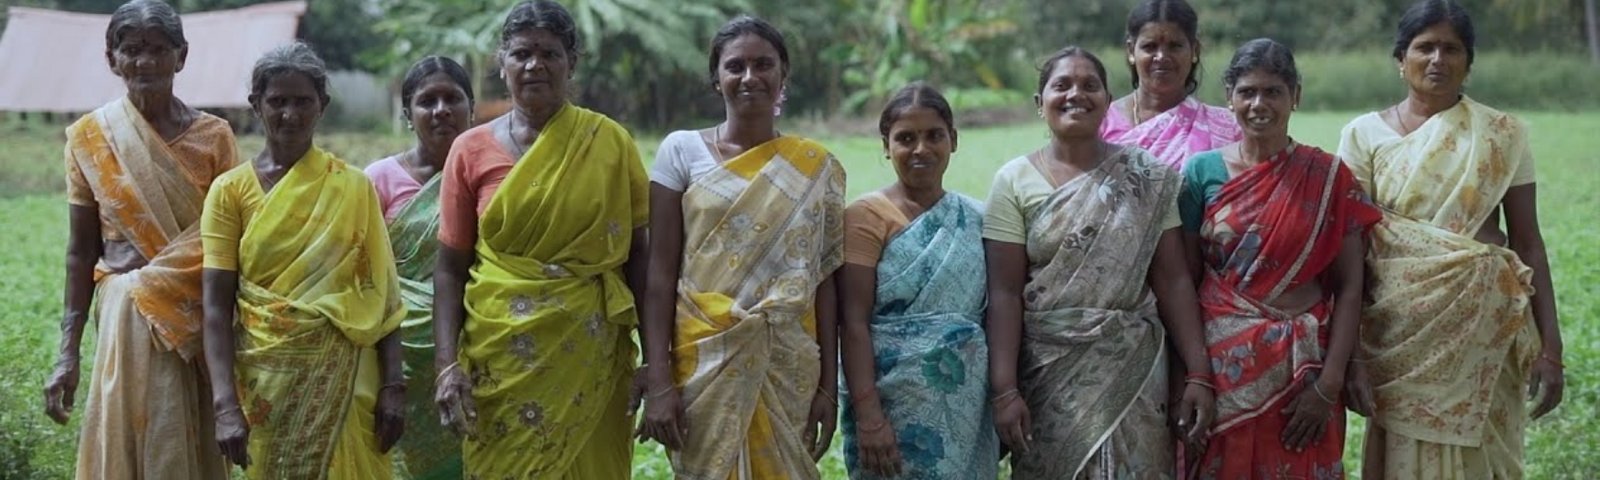 Women of Vellore who revived the Nagnadhi River